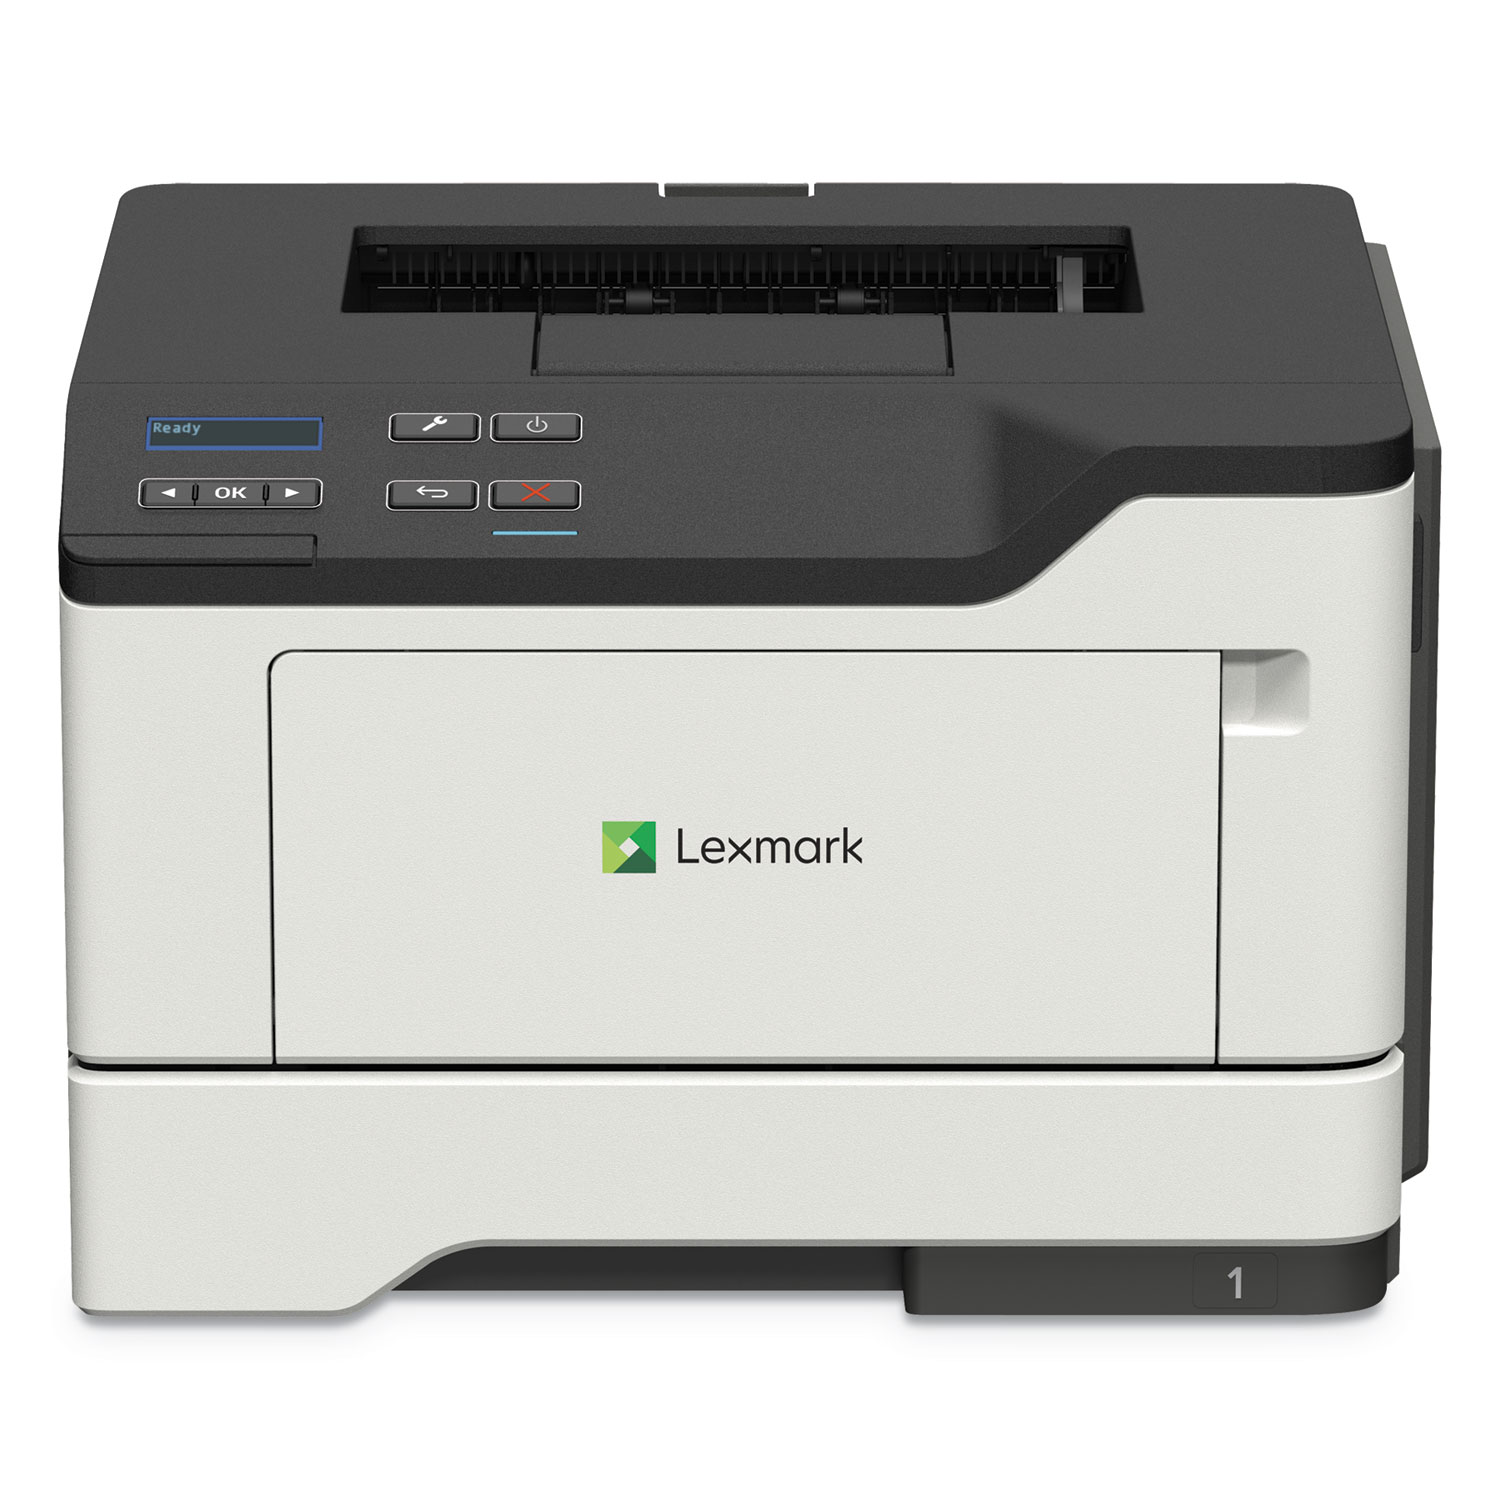 MS421dn Laser Printer